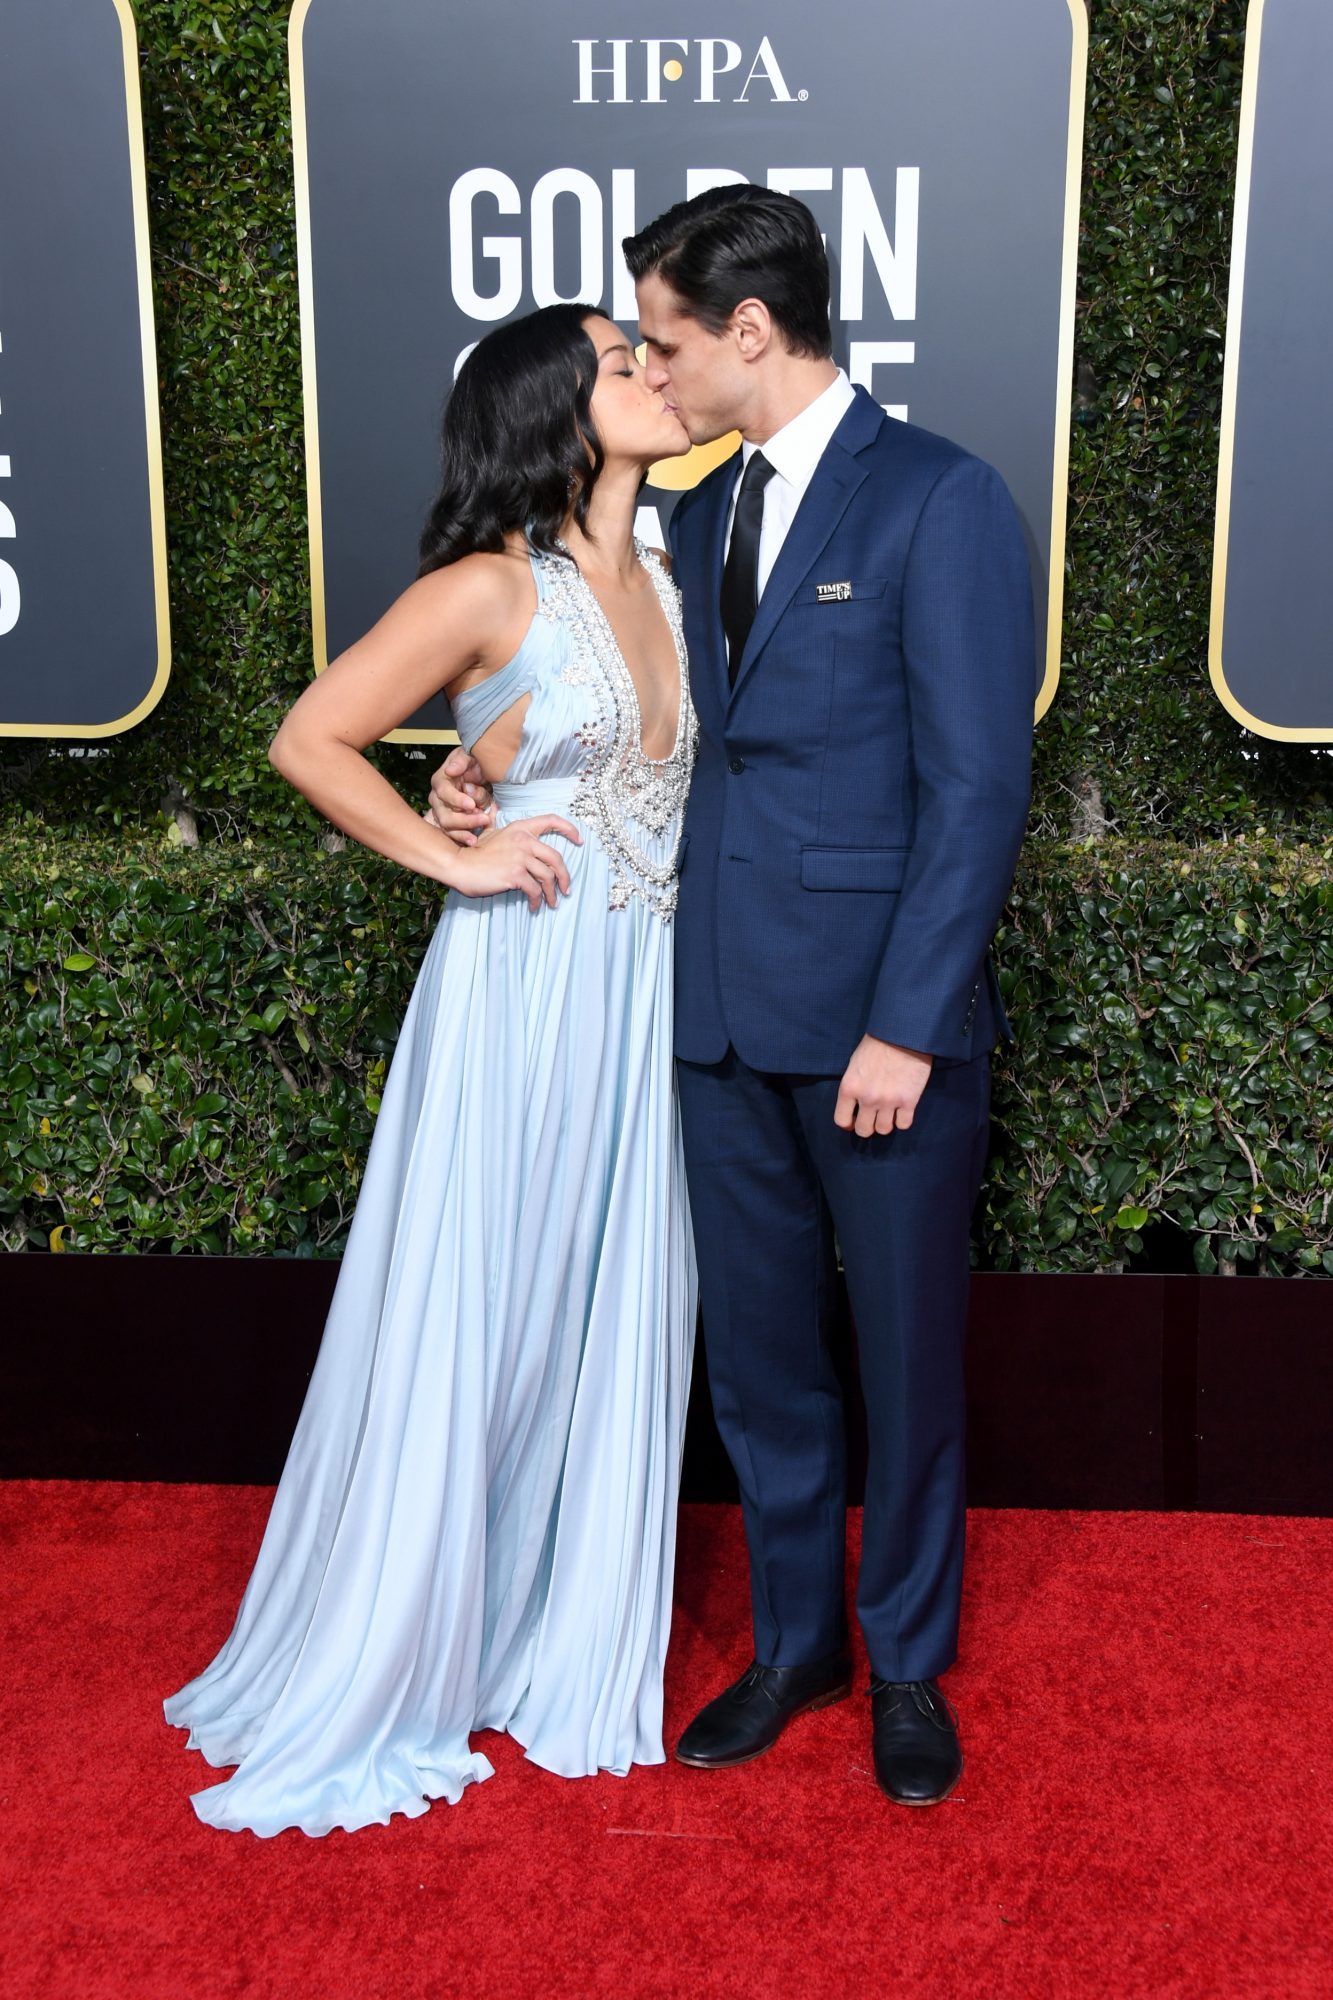 gina rodriguez and joe locicero 2019 golden globes